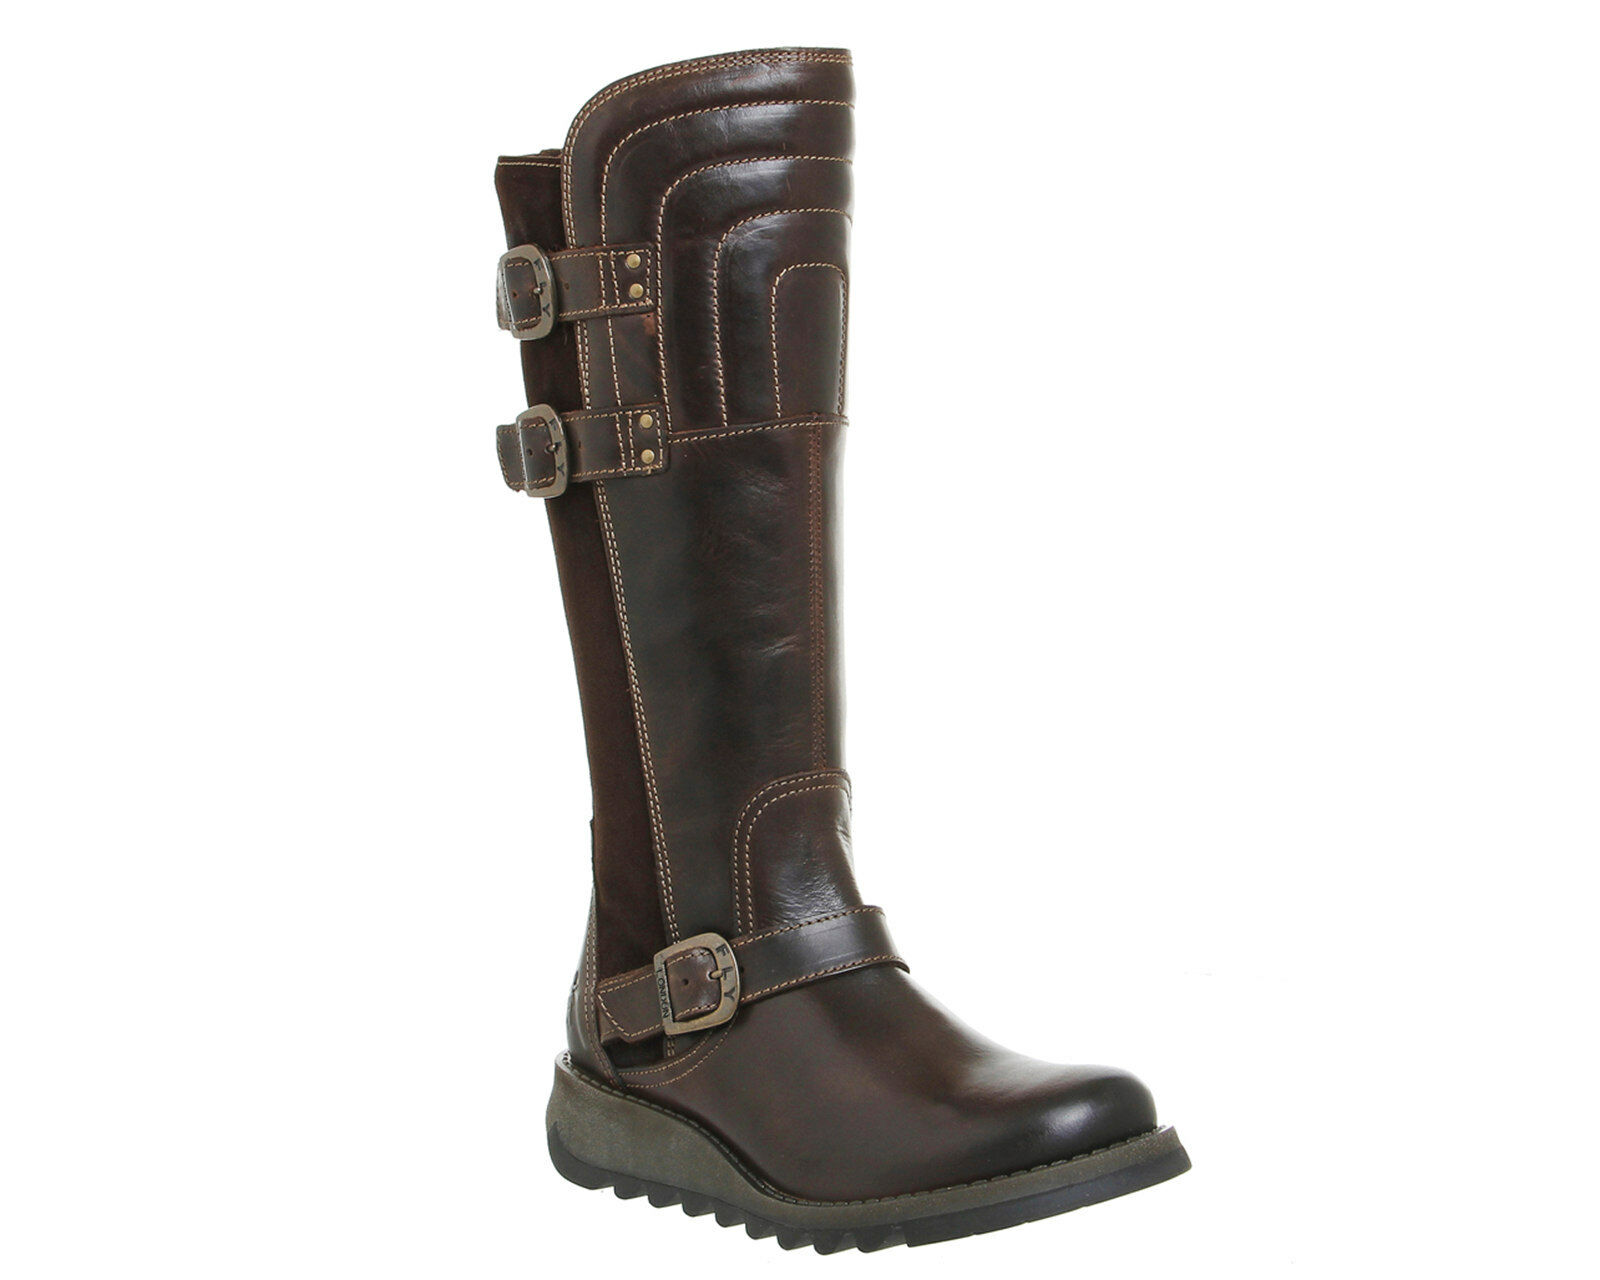 FLY LONDON Sher ' Damen Leder Stiefel dunkelbraun